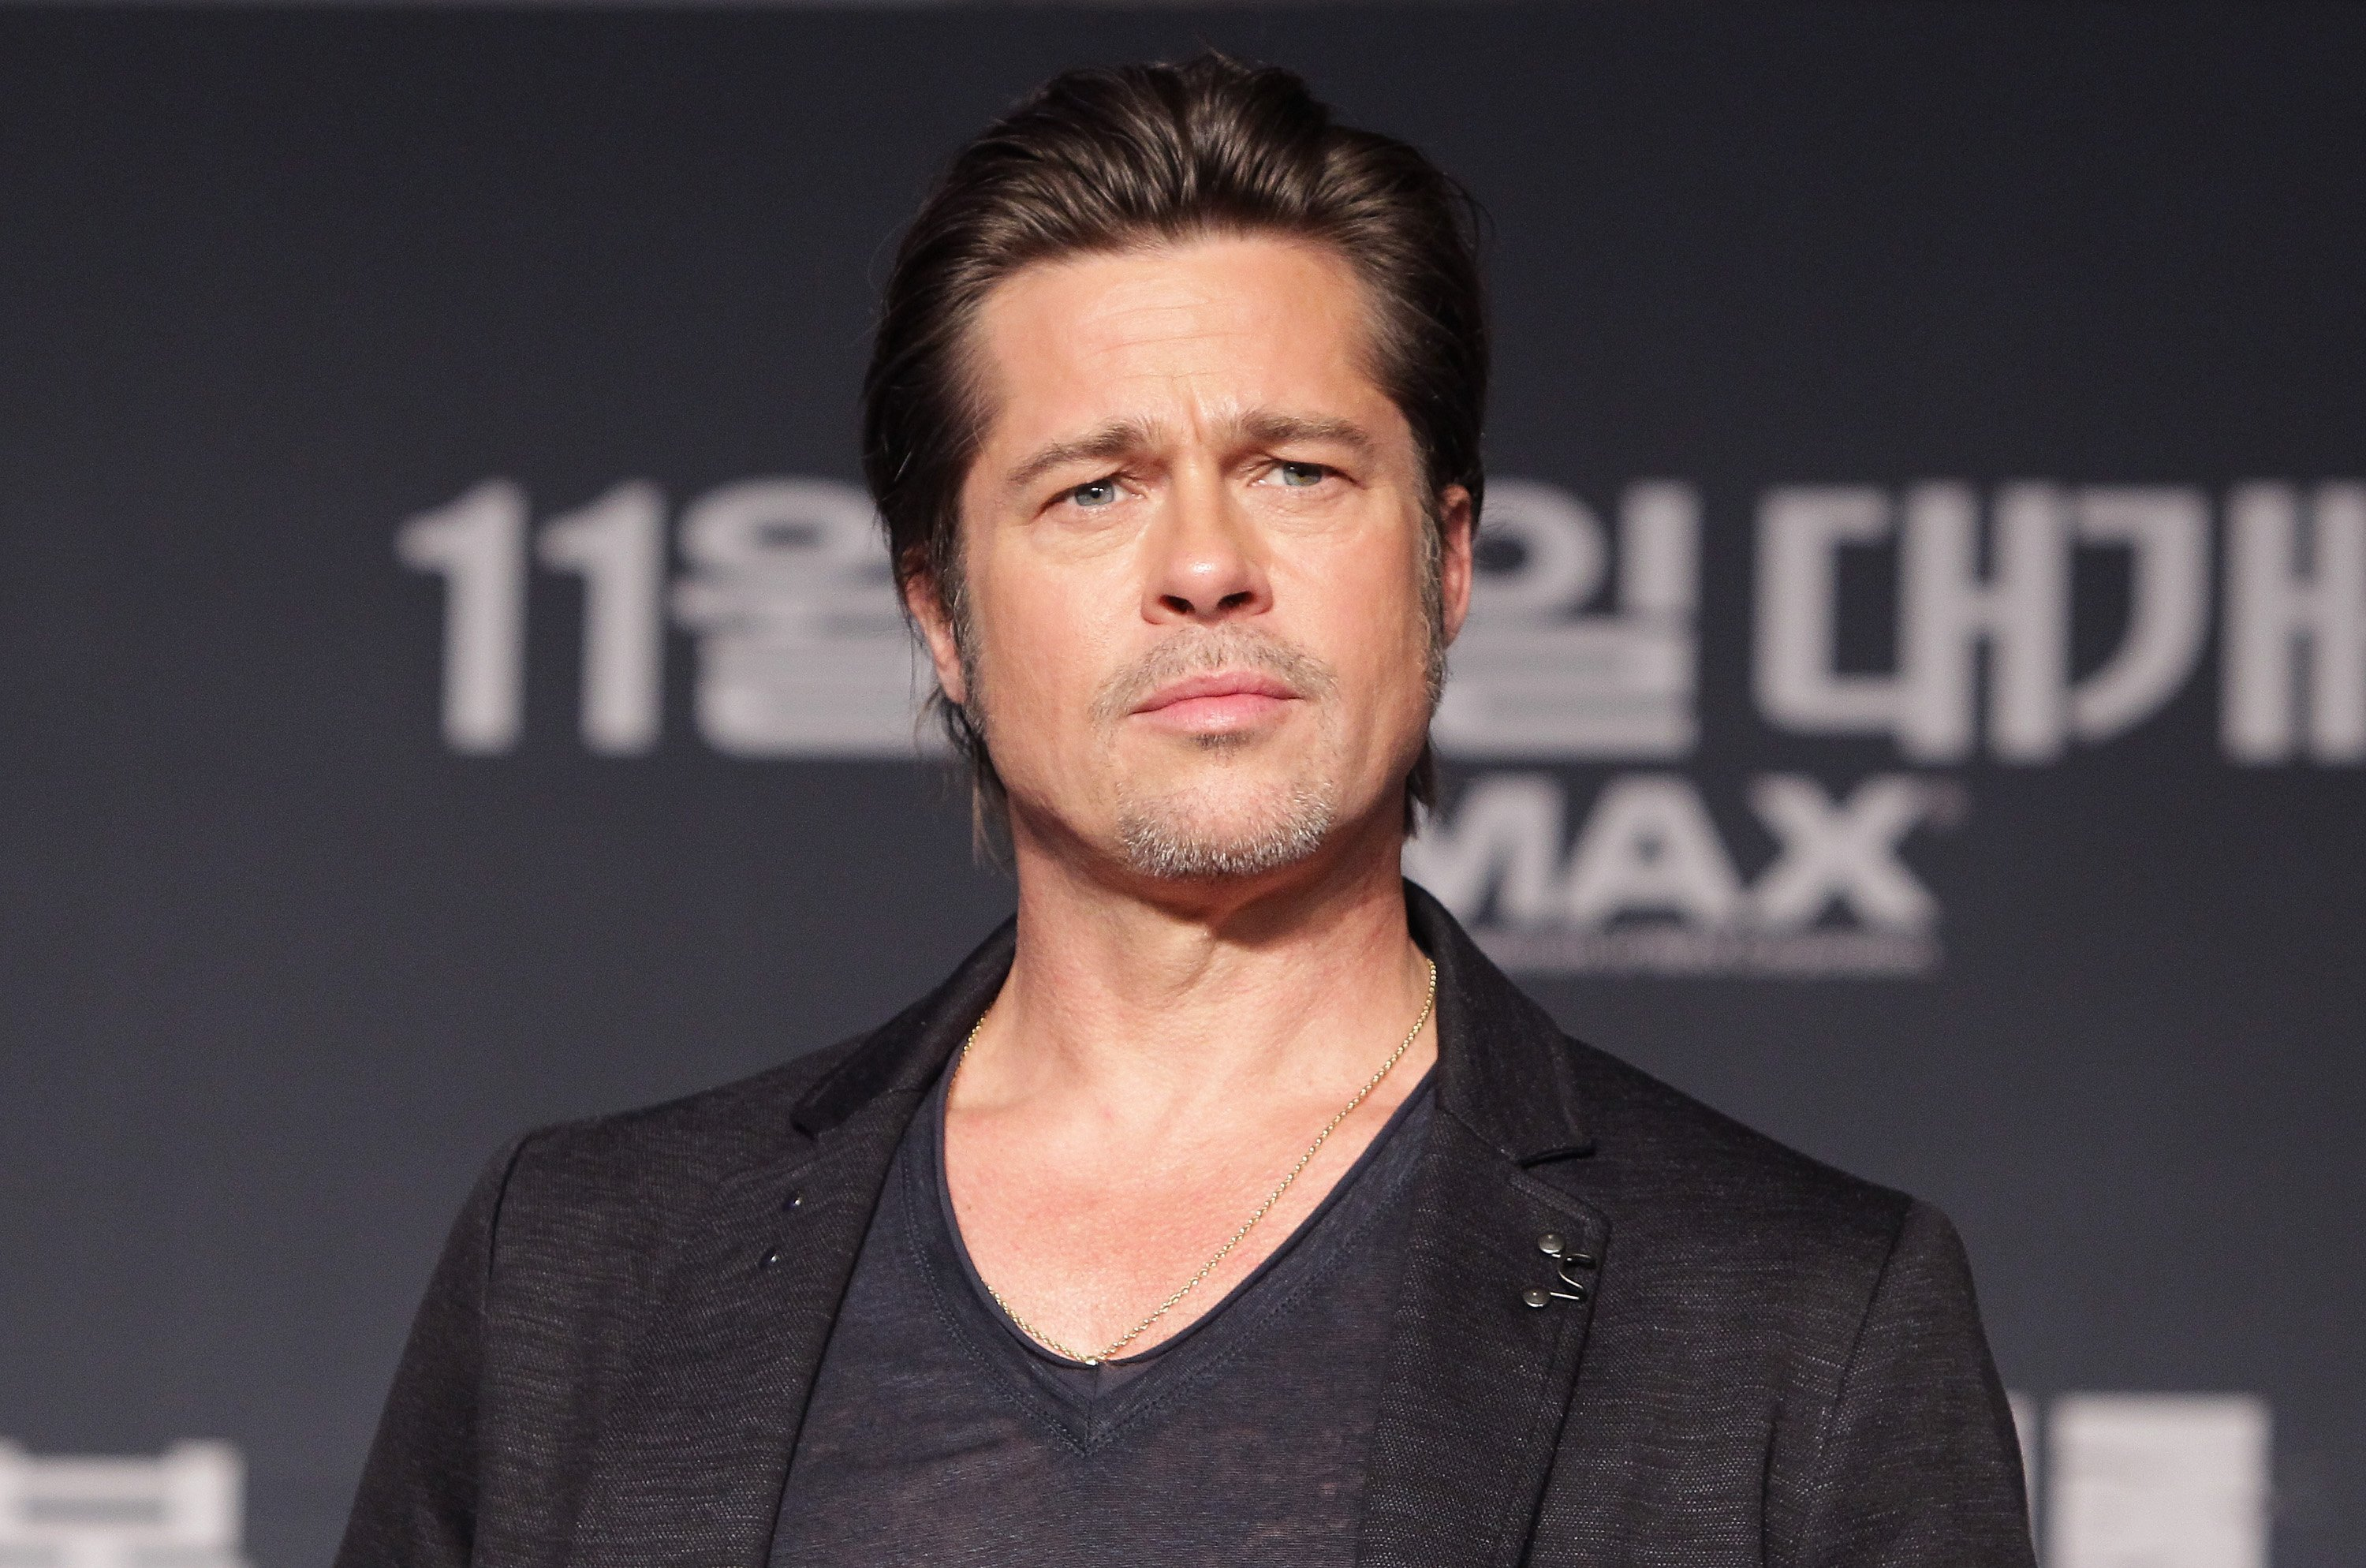 Brad Pitt during a 2014 press conference in South Korea. | Photo: Getty Images